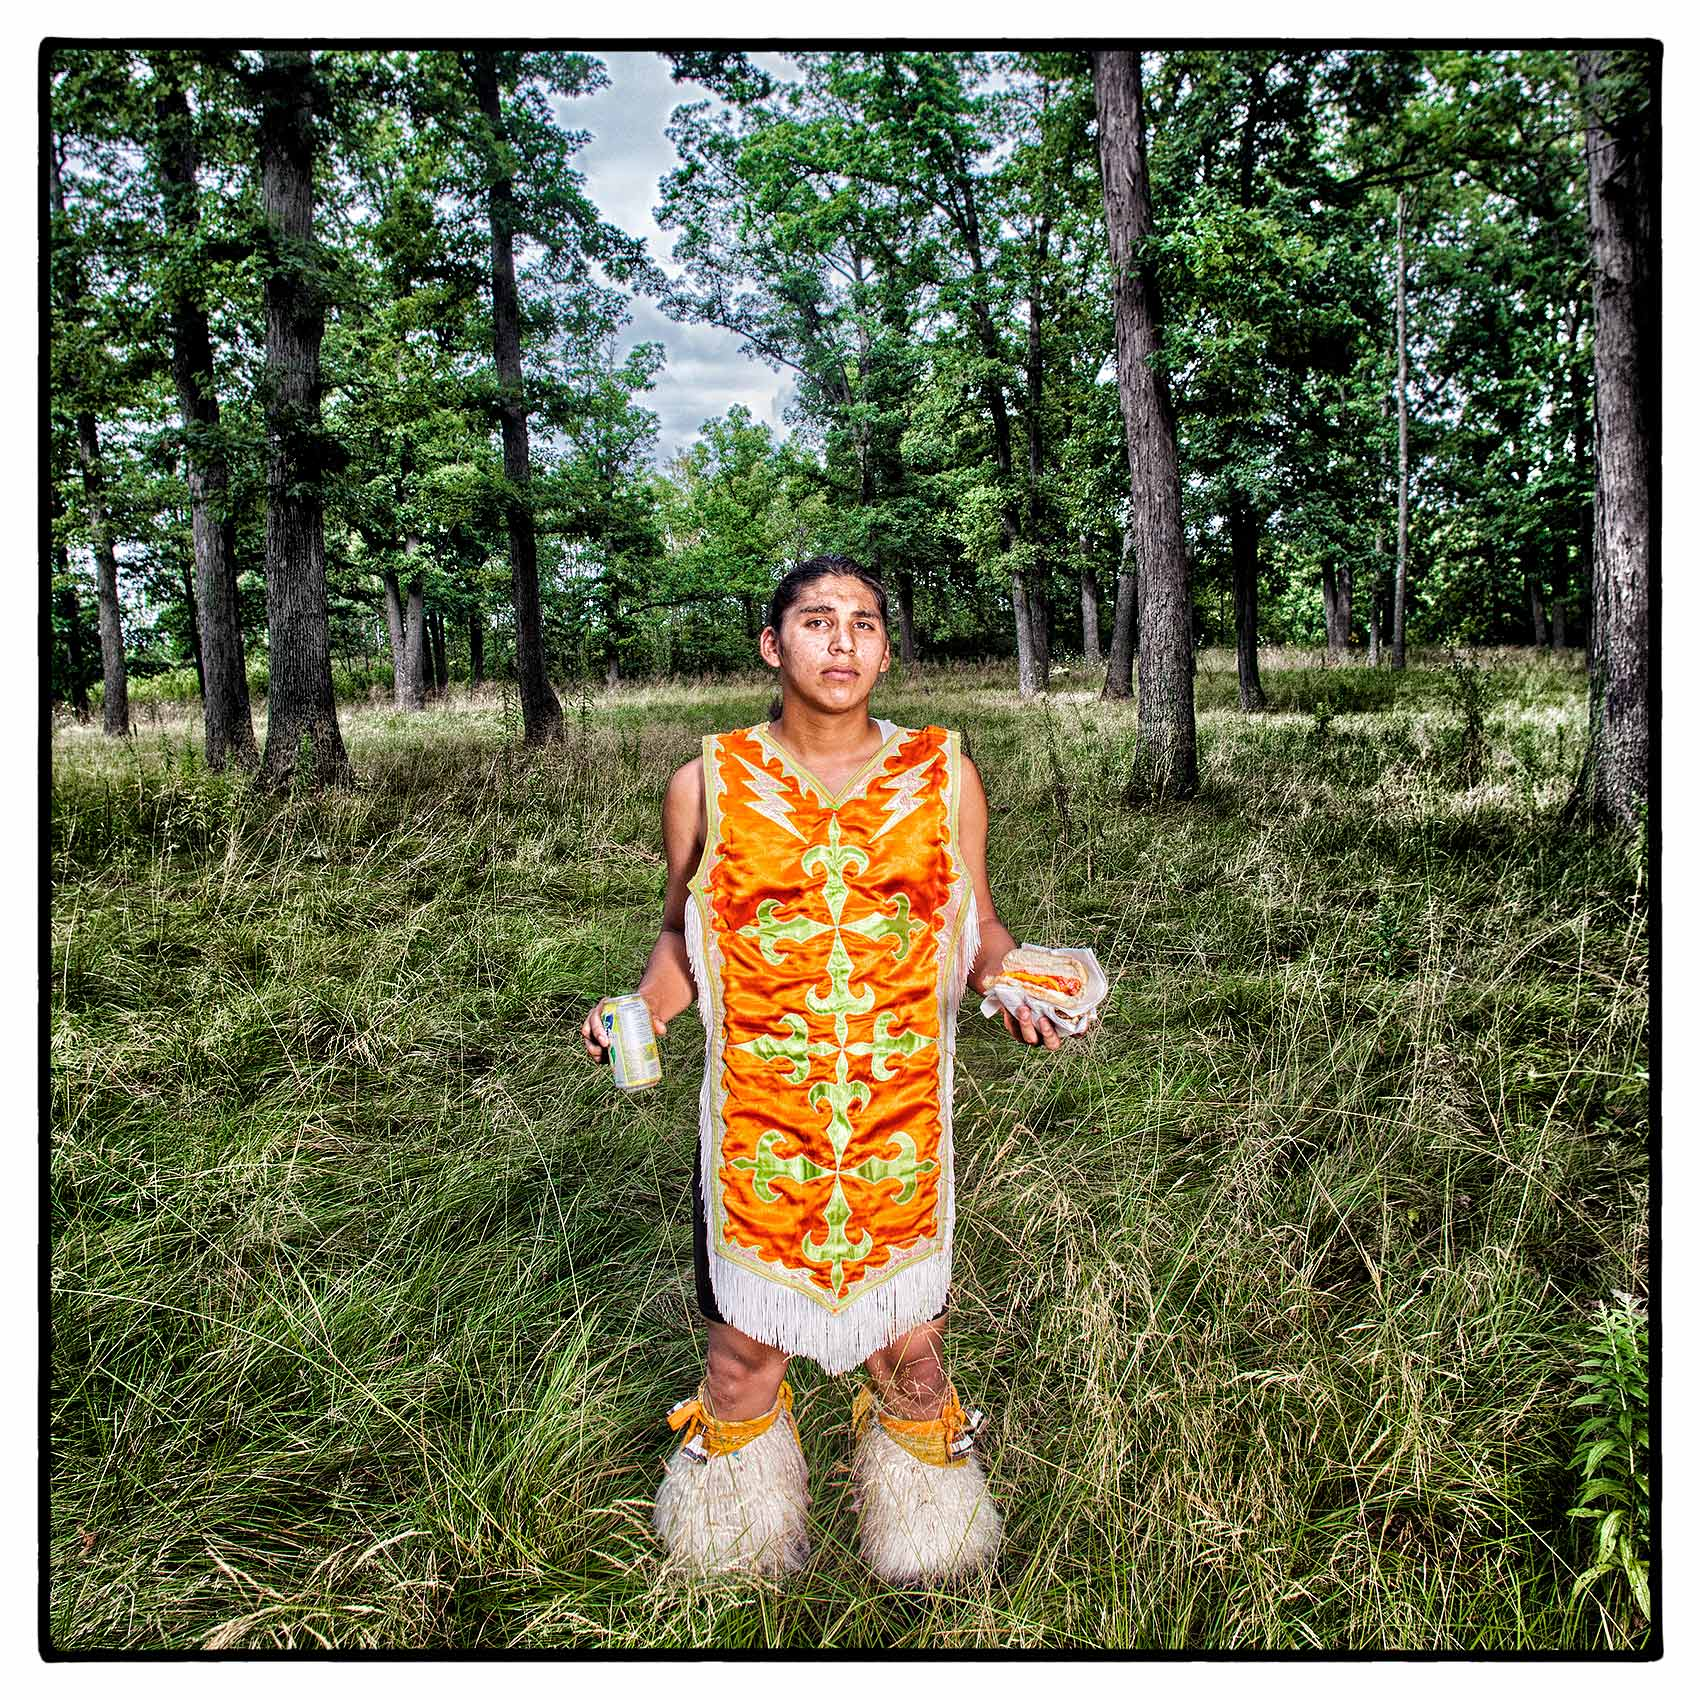 a-first-nations-boy-poses-for-a-photo-during-a-traditional-pow-wow-on-his-reserve-near-brandford-ontario-canada